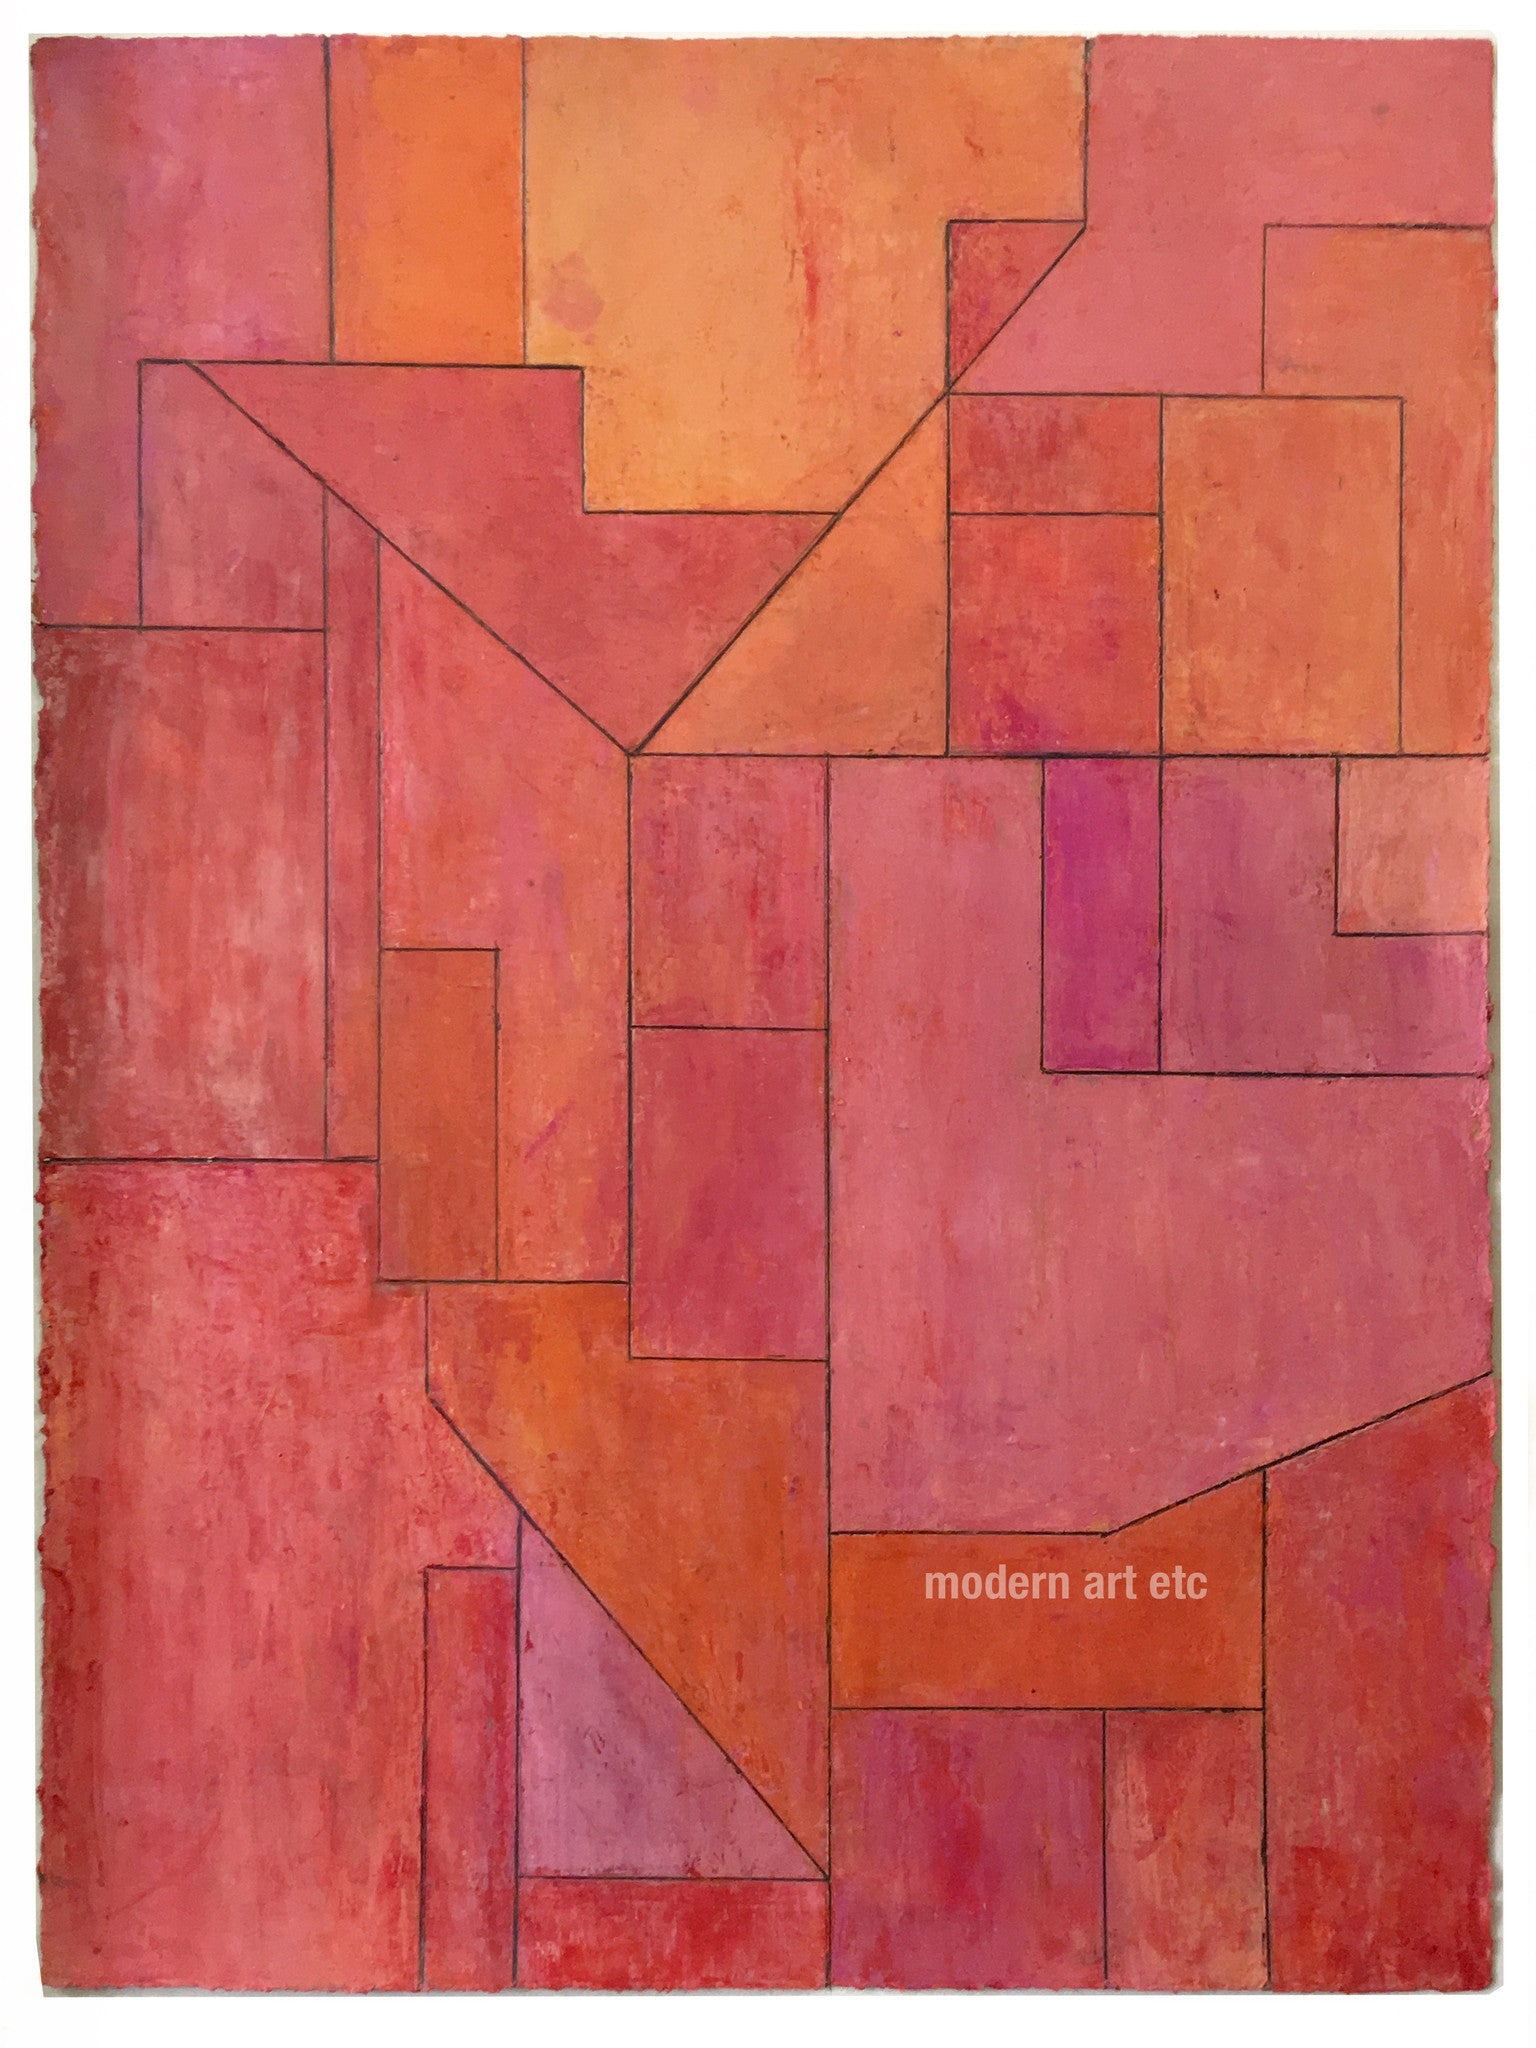 Abstract oil on paper 22x30 in. - Architectural forms - Red, Stephen Cimini - unframed